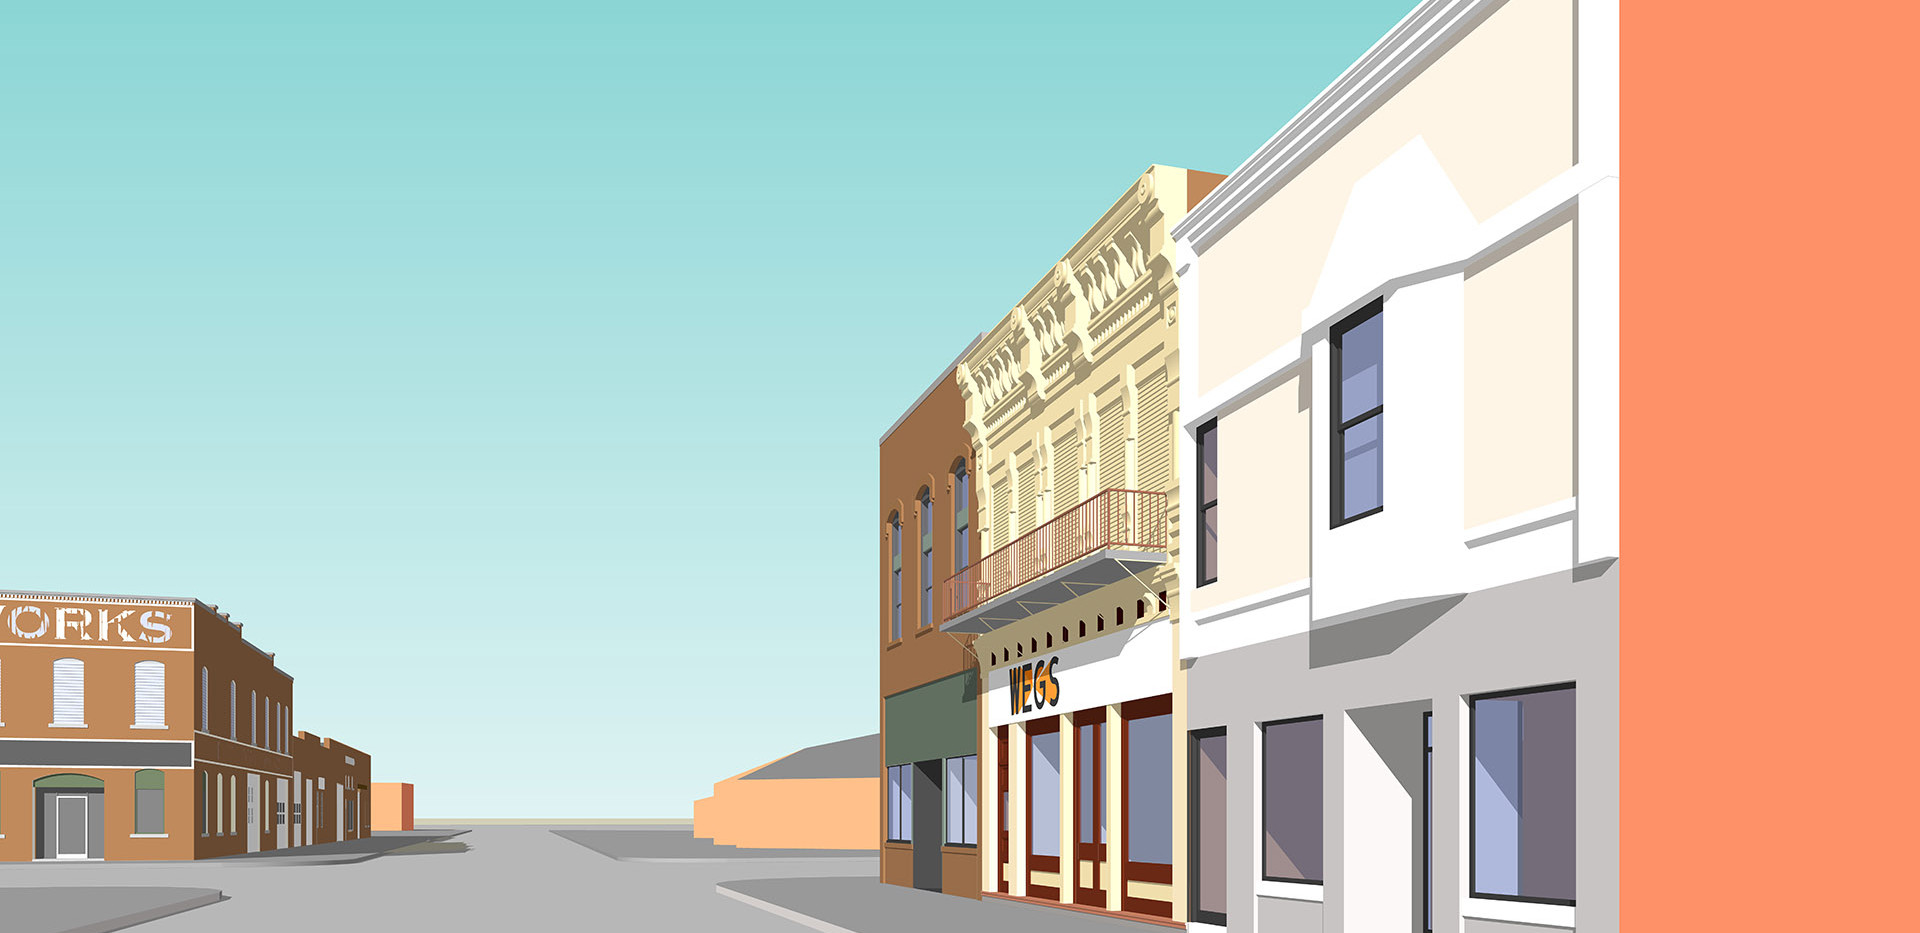 3 SIDE PERSPECTIVE_EXISTING_3-6-19.jpg